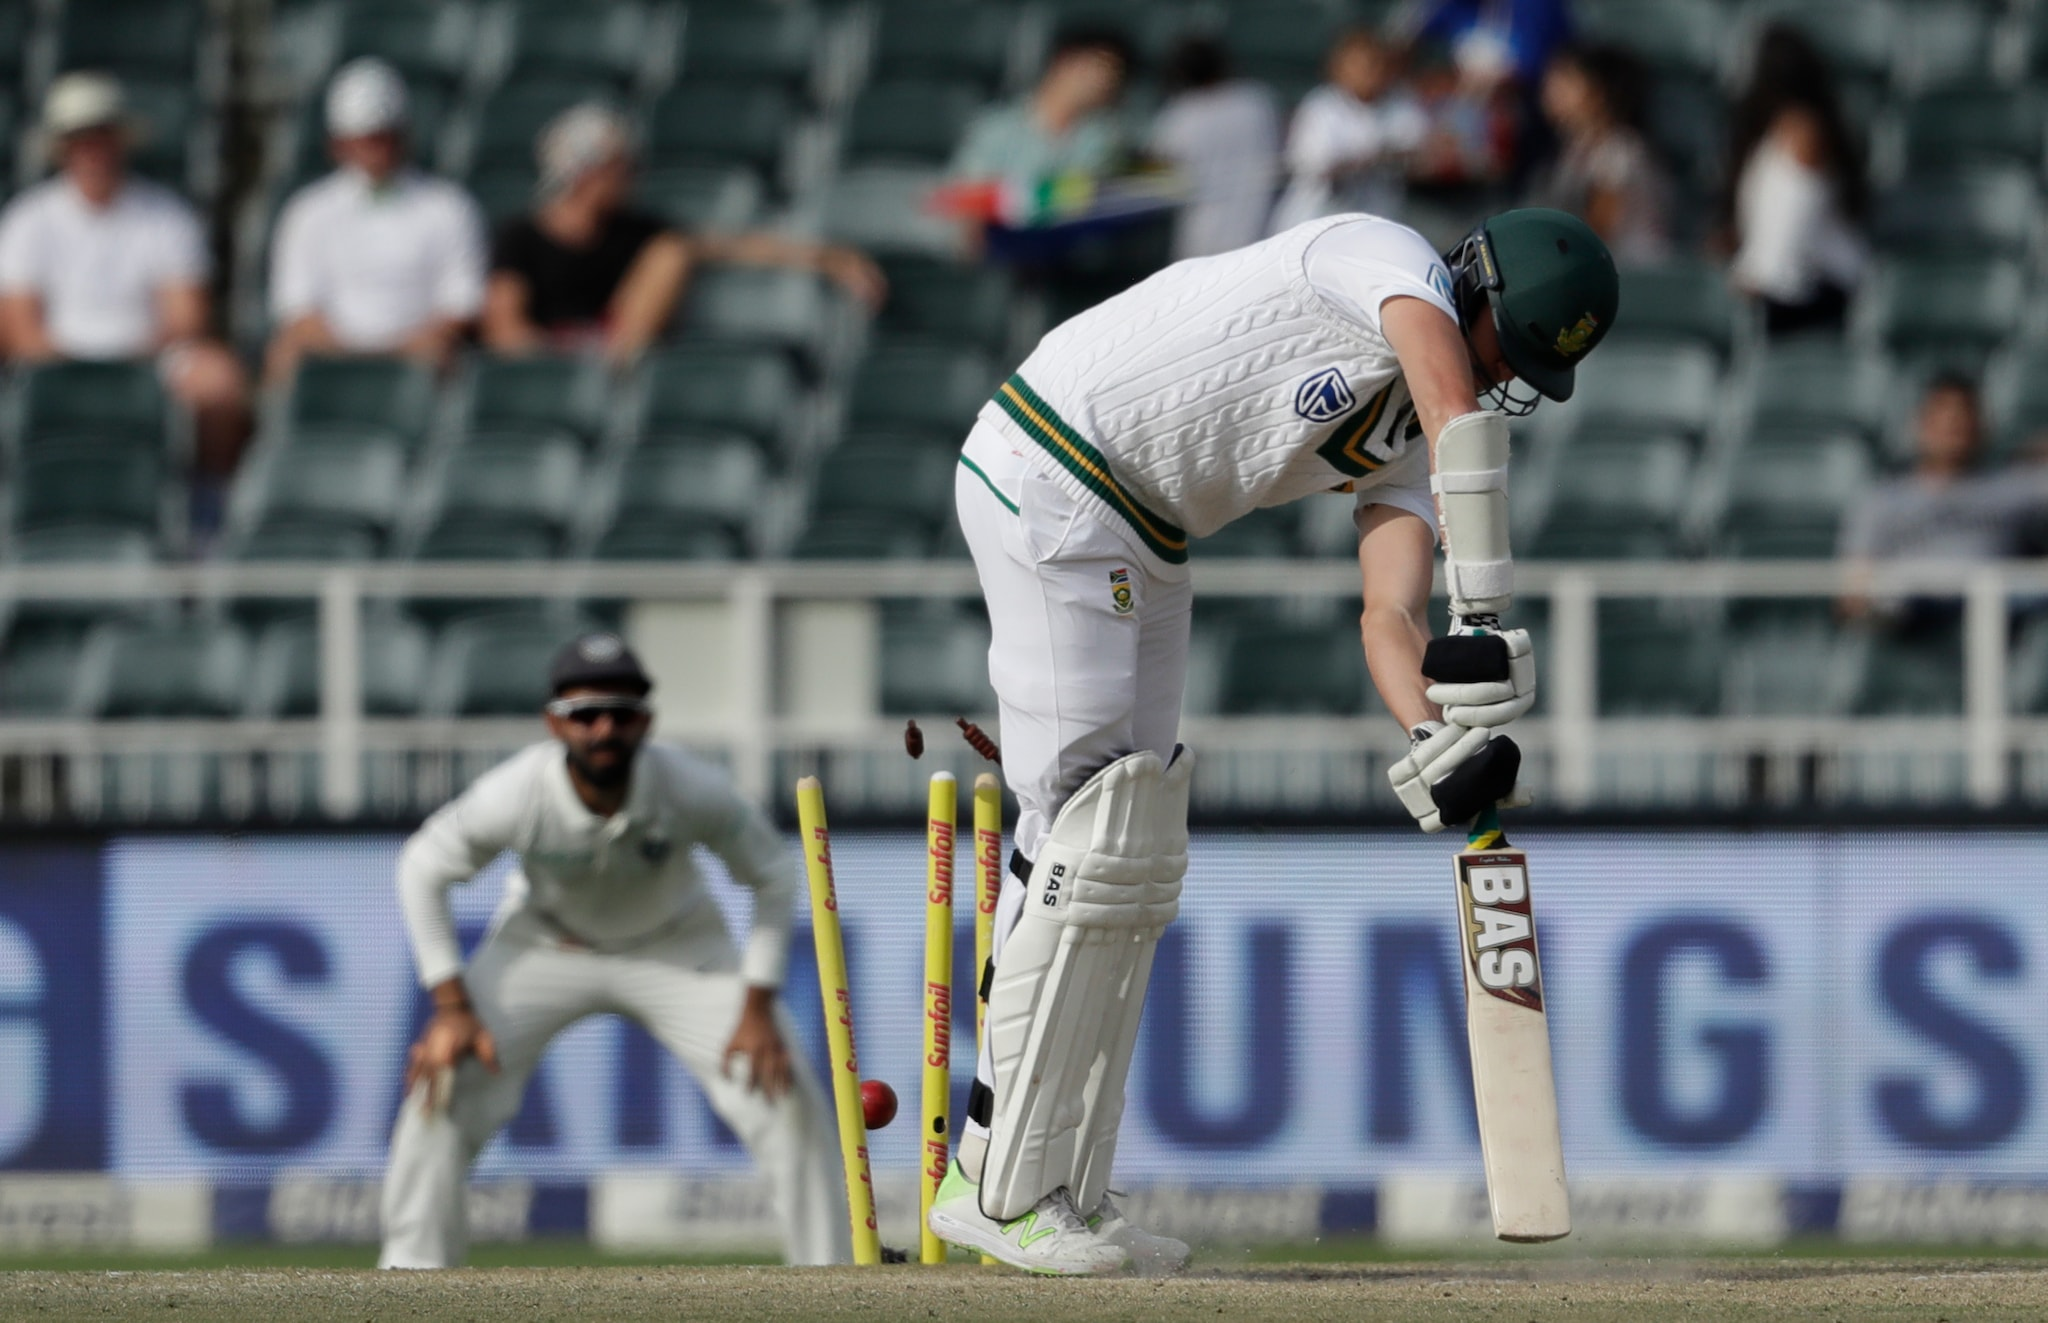 In Pics, India vs South Africa, Third Test, Day 4 at Johannesburg